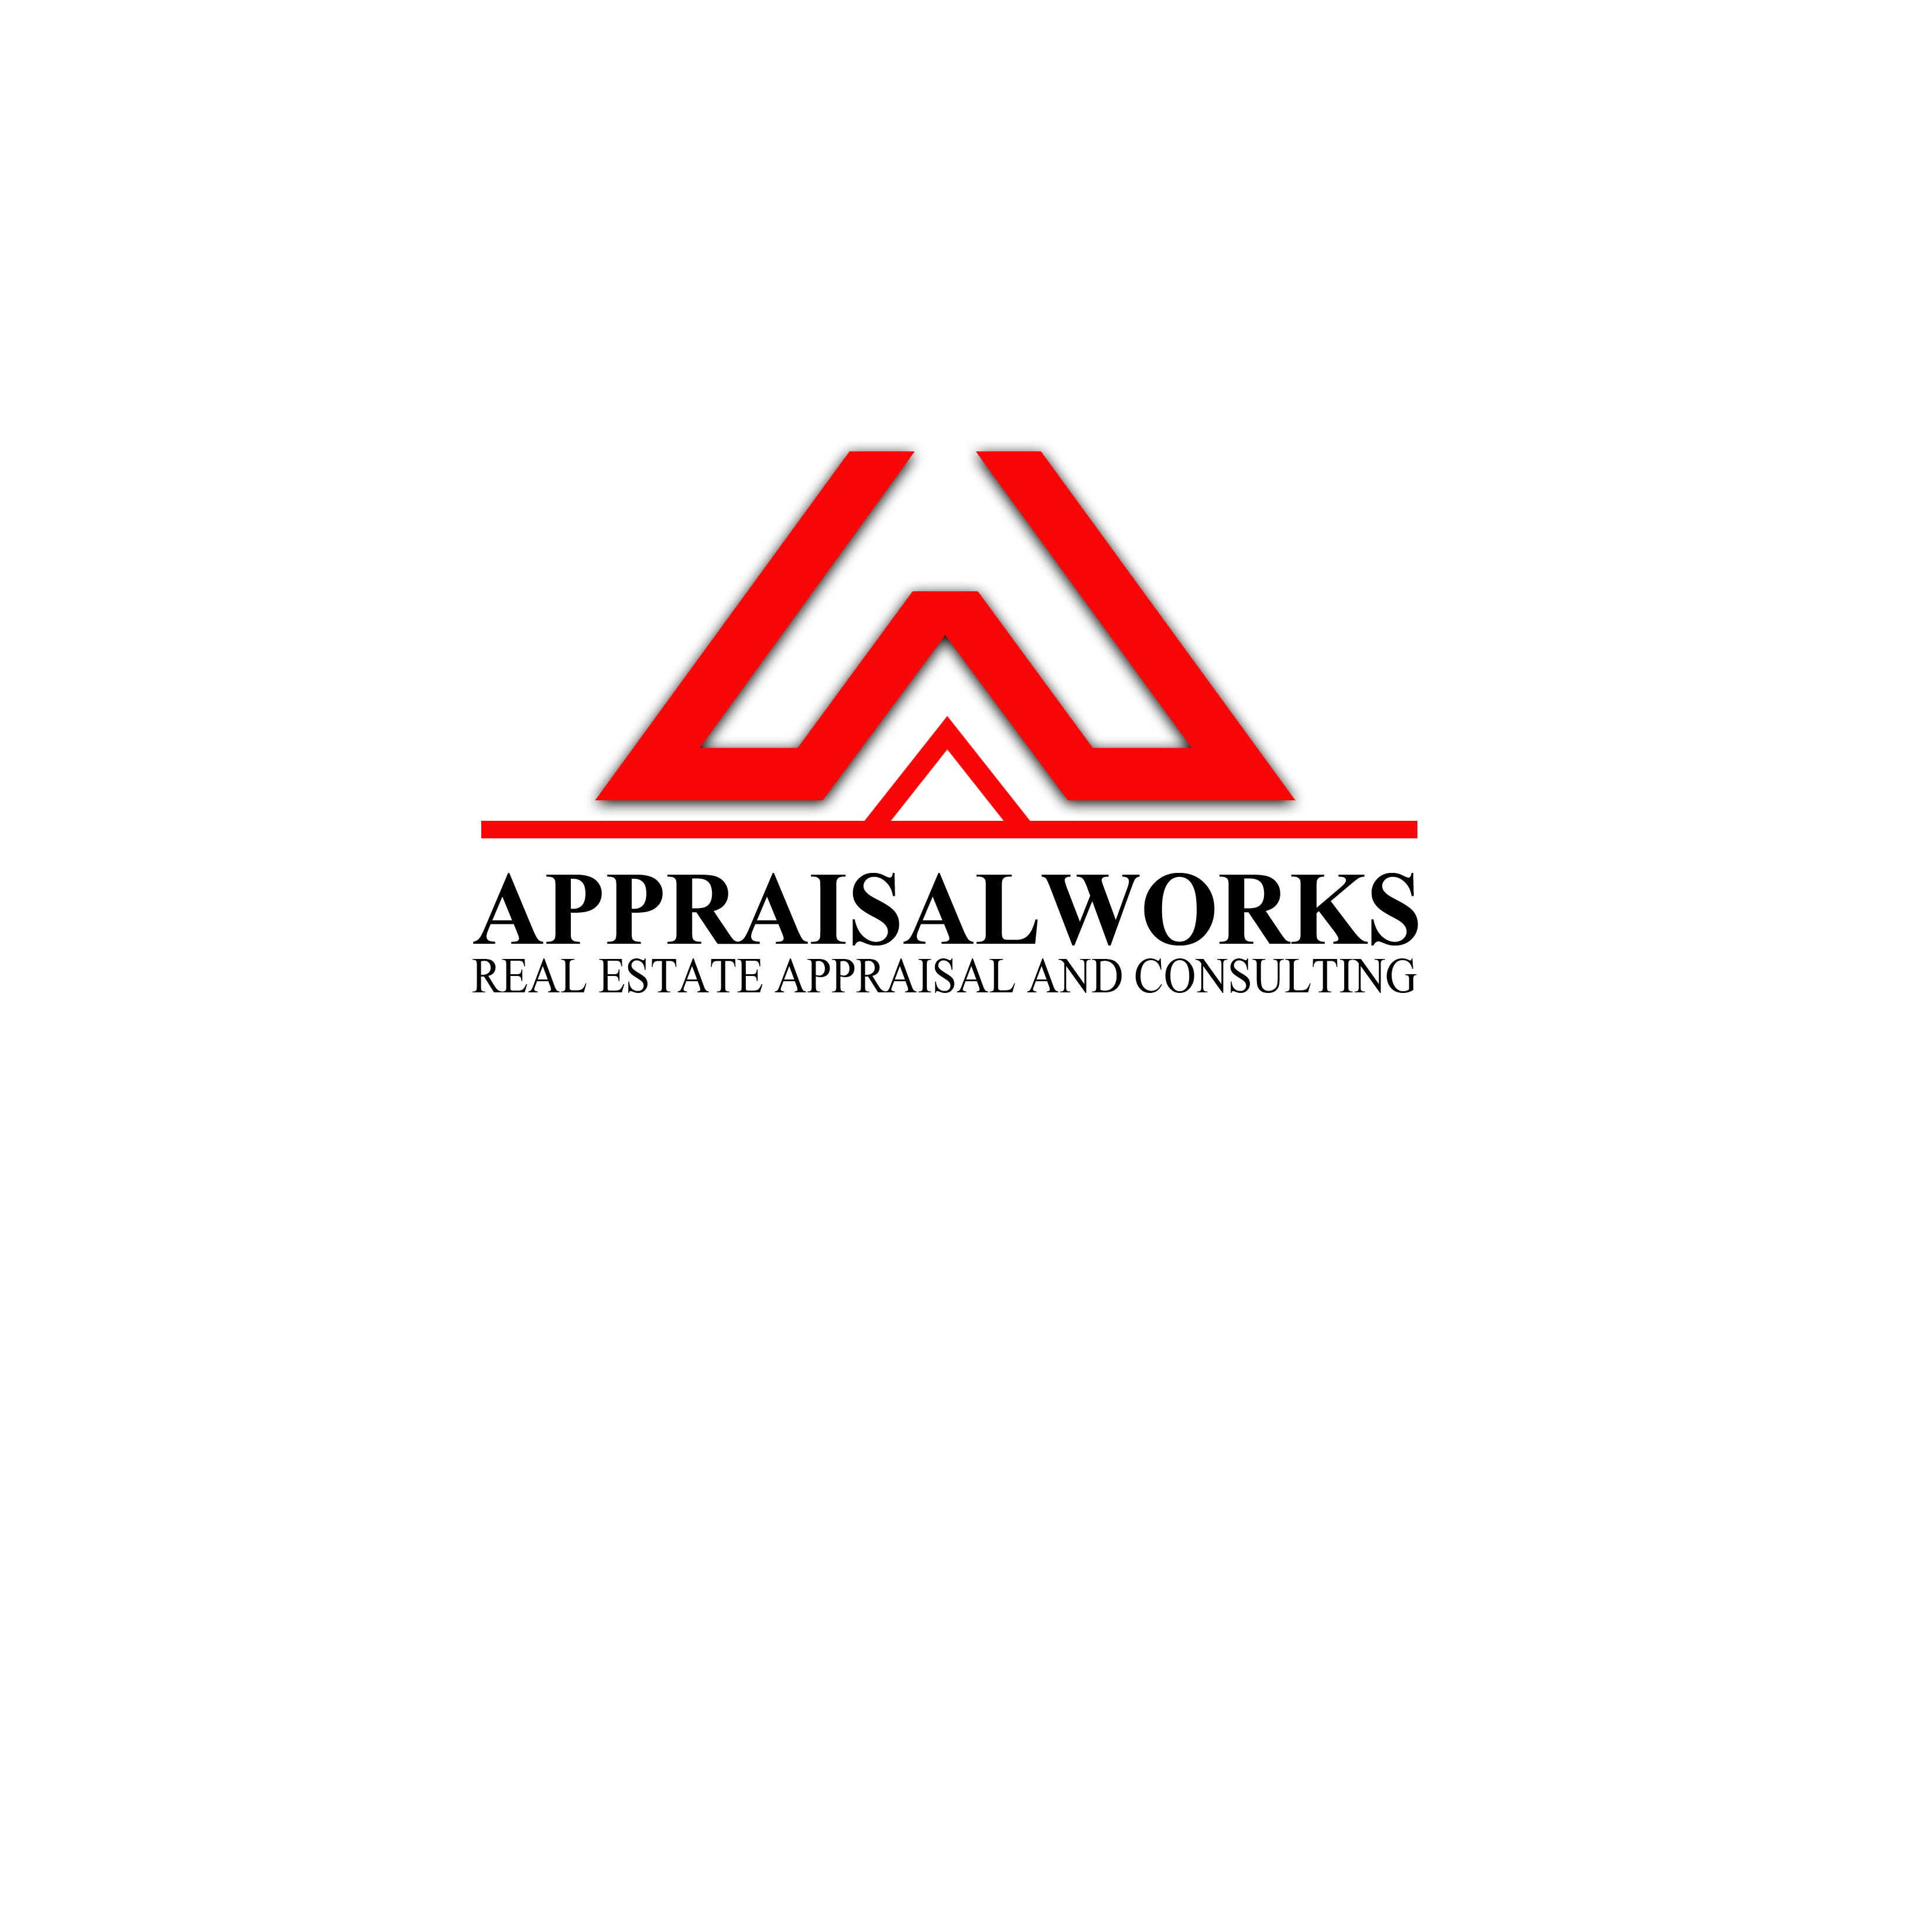 Logo Design by Allan Esclamado - Entry No. 136 in the Logo Design Contest Appraisal Works Logo Design.